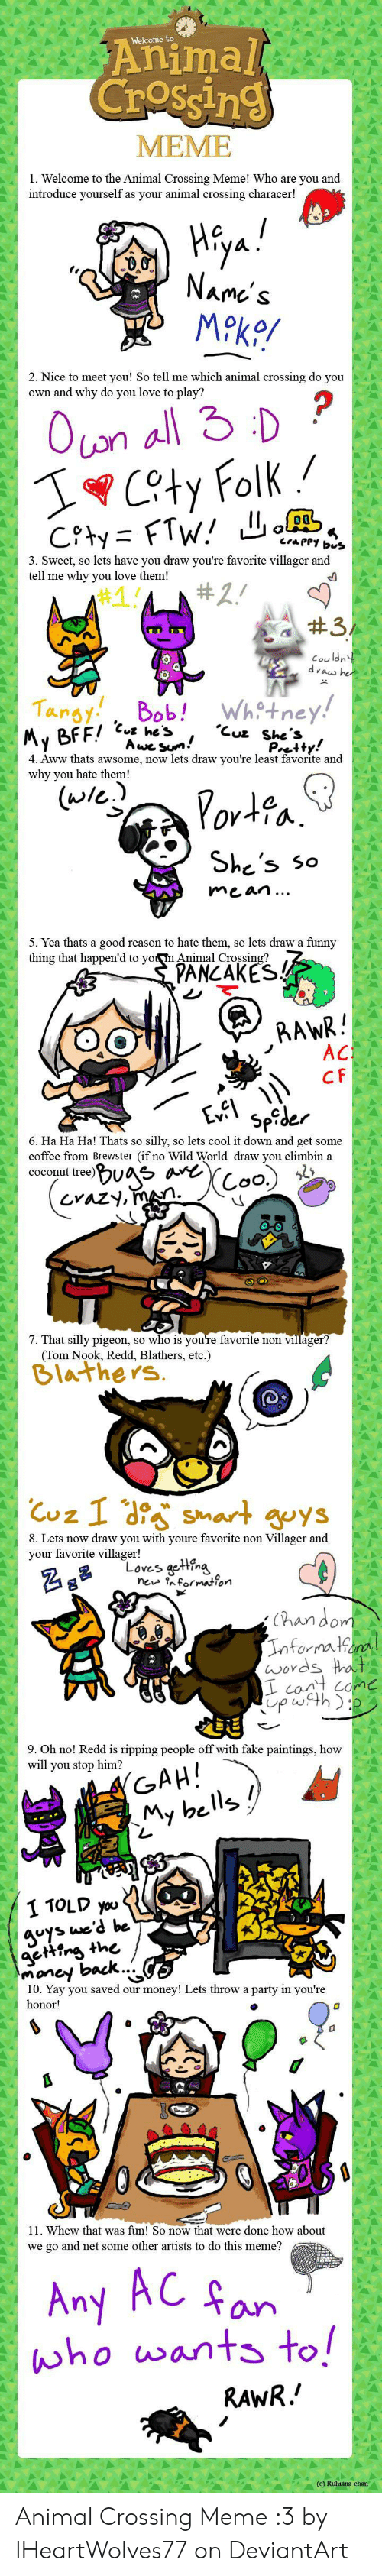 Animal Crossing Meme 1 Welcome To The Animal Crossing Meme Who